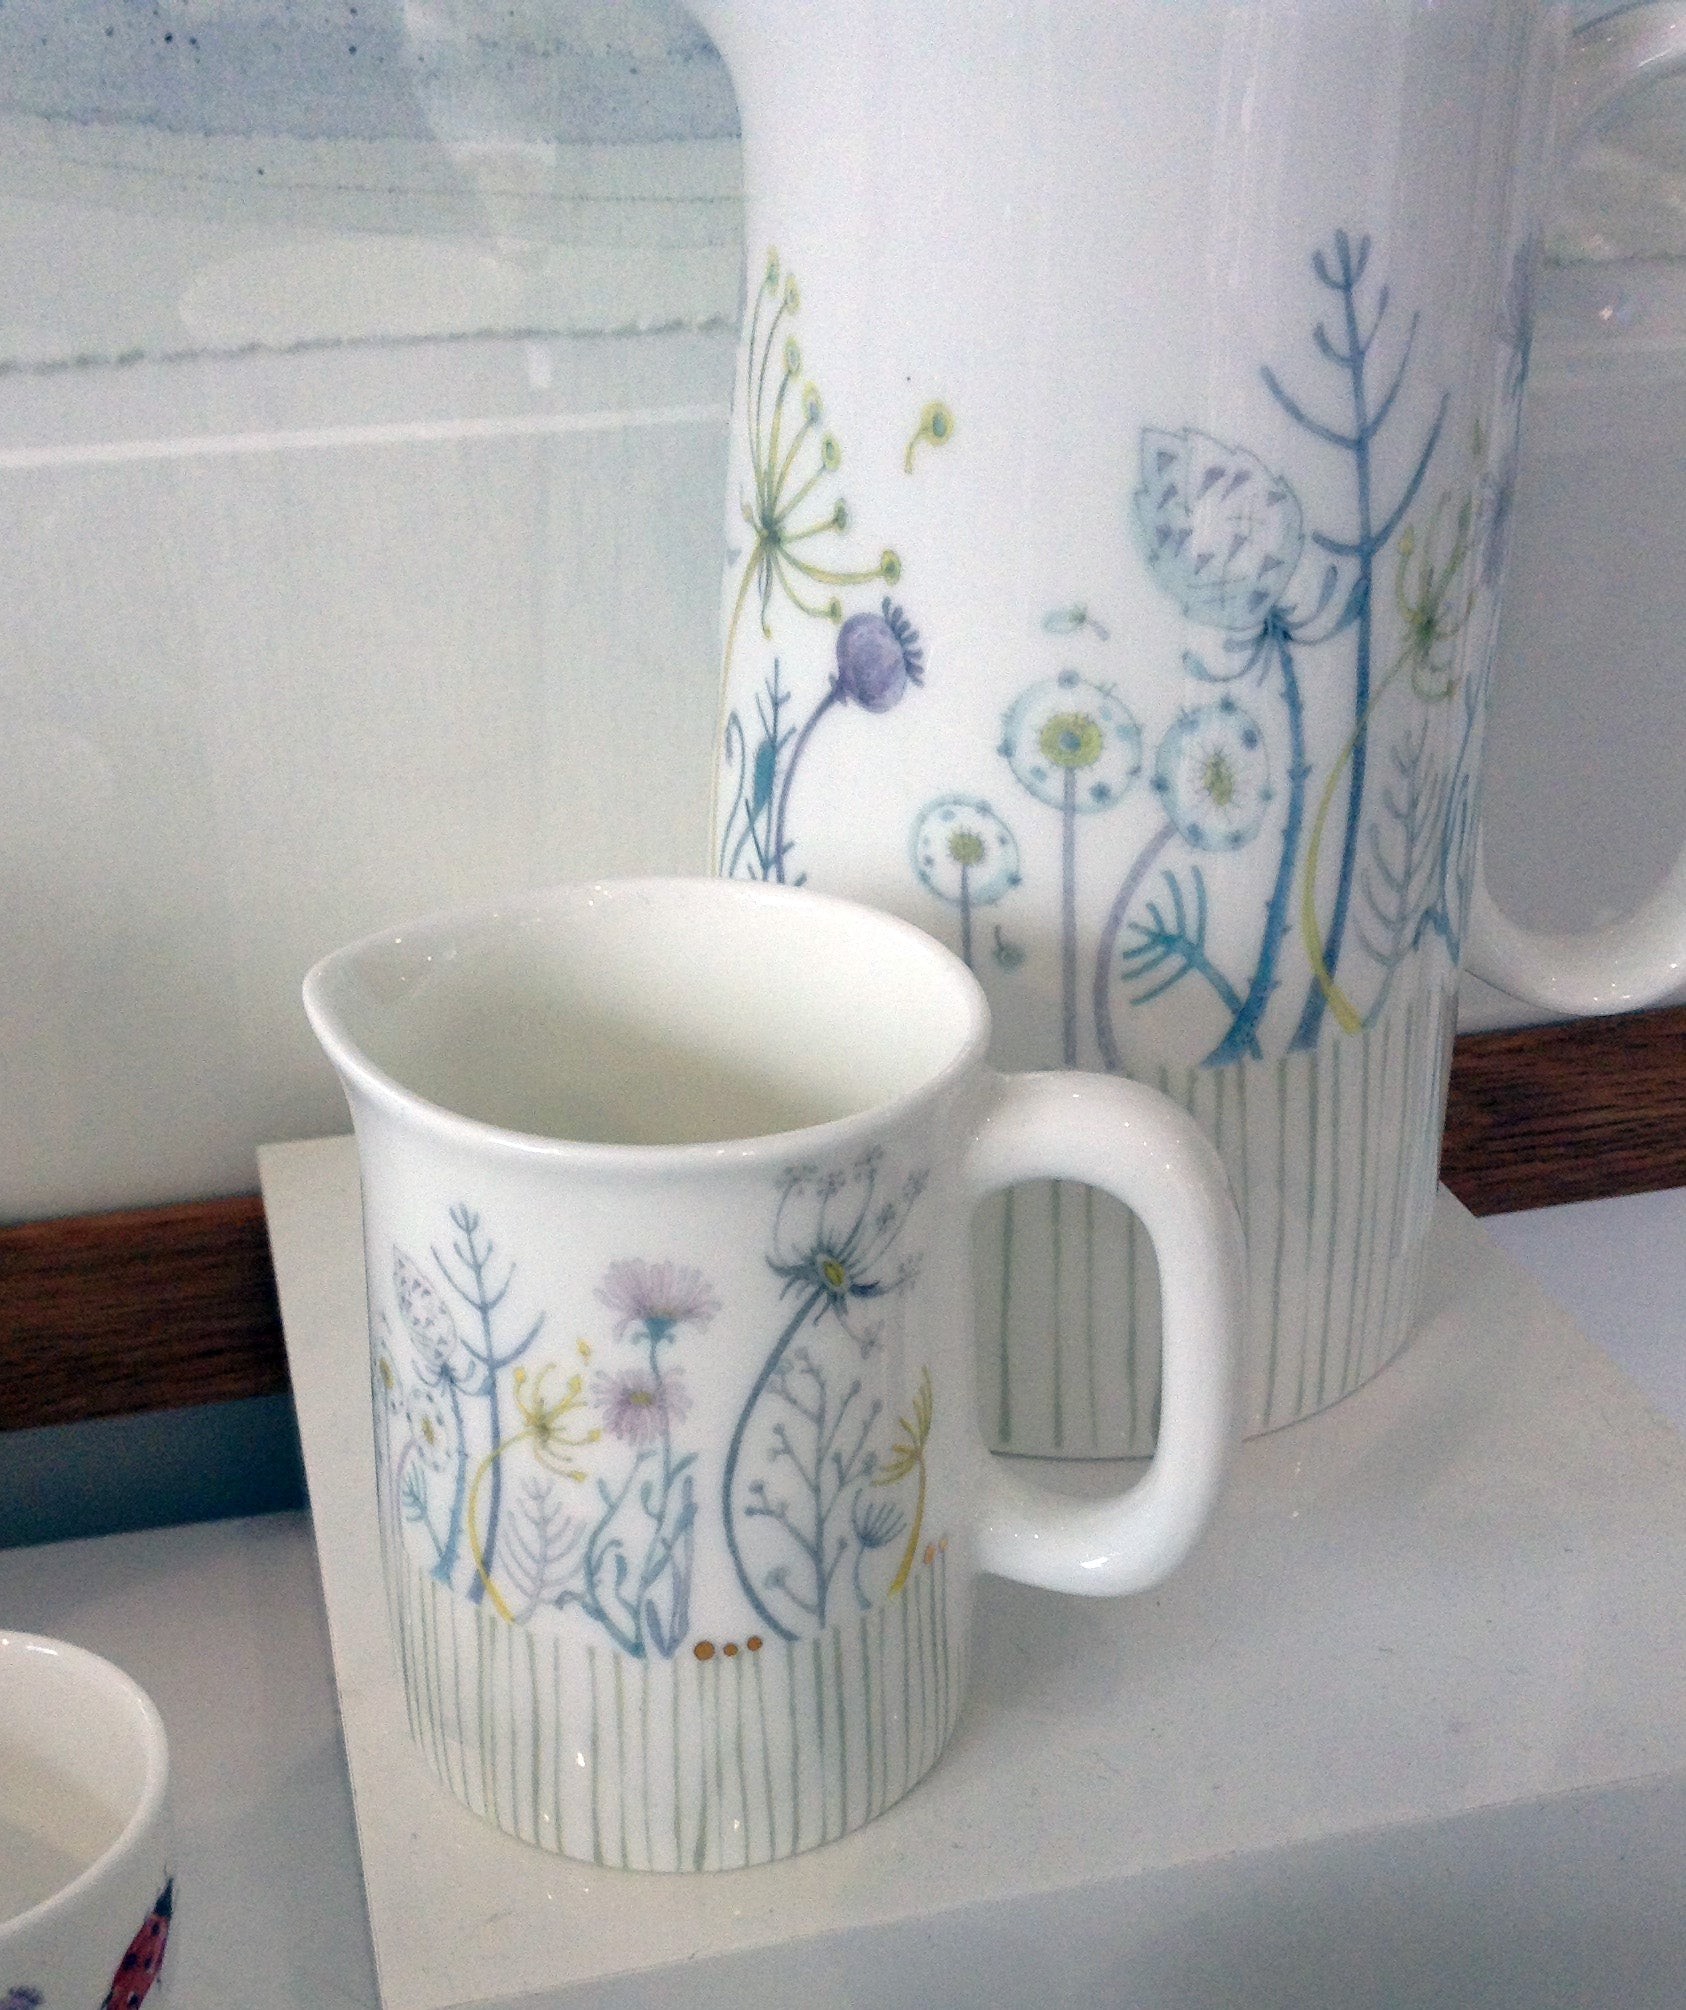 ... Bone China Tableware by Julia Davey W11JD43 ... & Bone China Tableware by Julia Davey W11JD43 - therobinsnestgallery